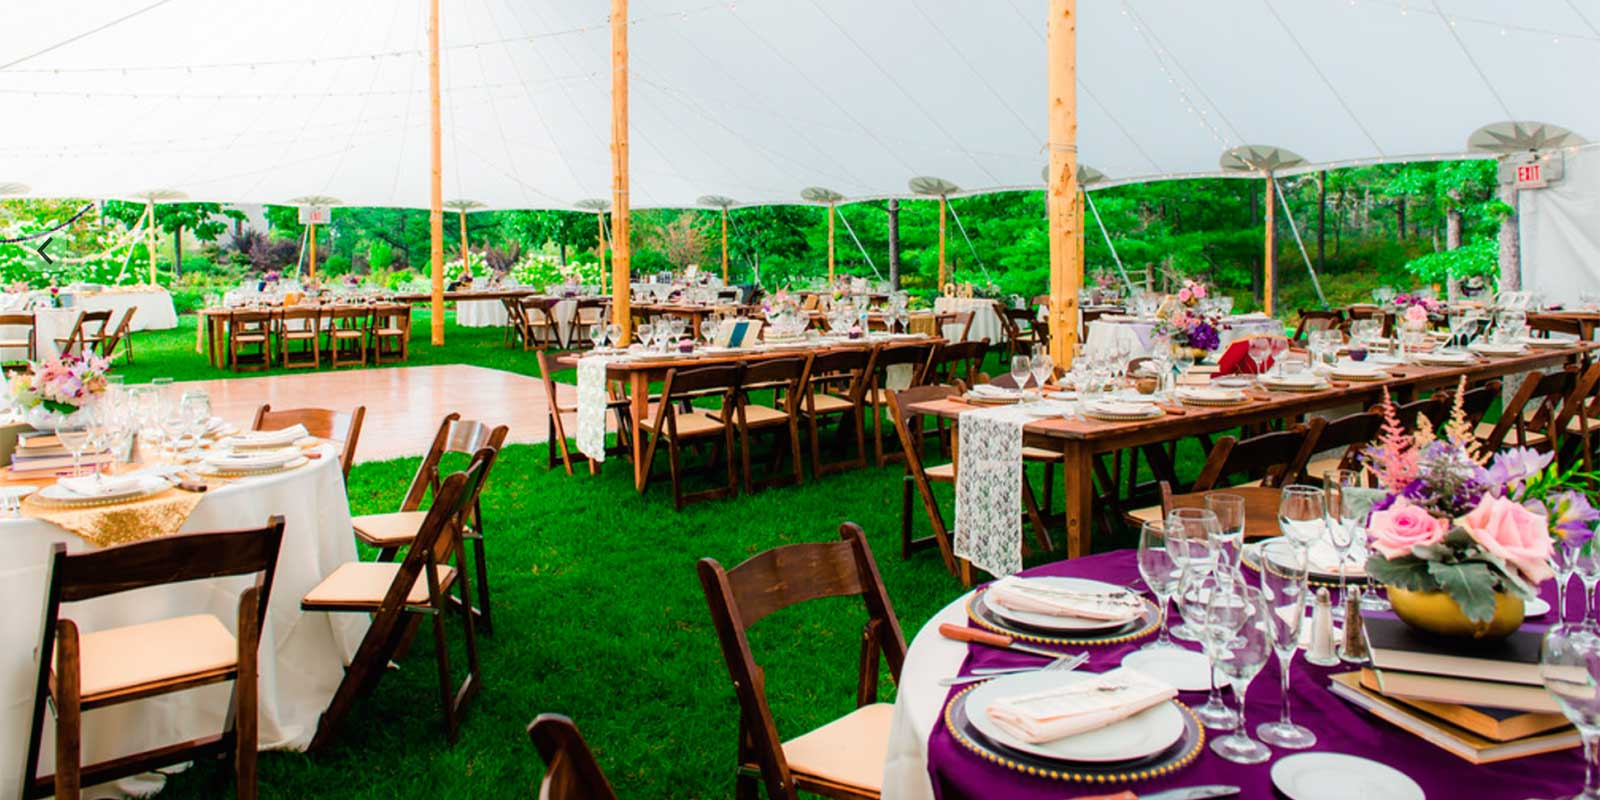 Party Rentals in Cape Cod